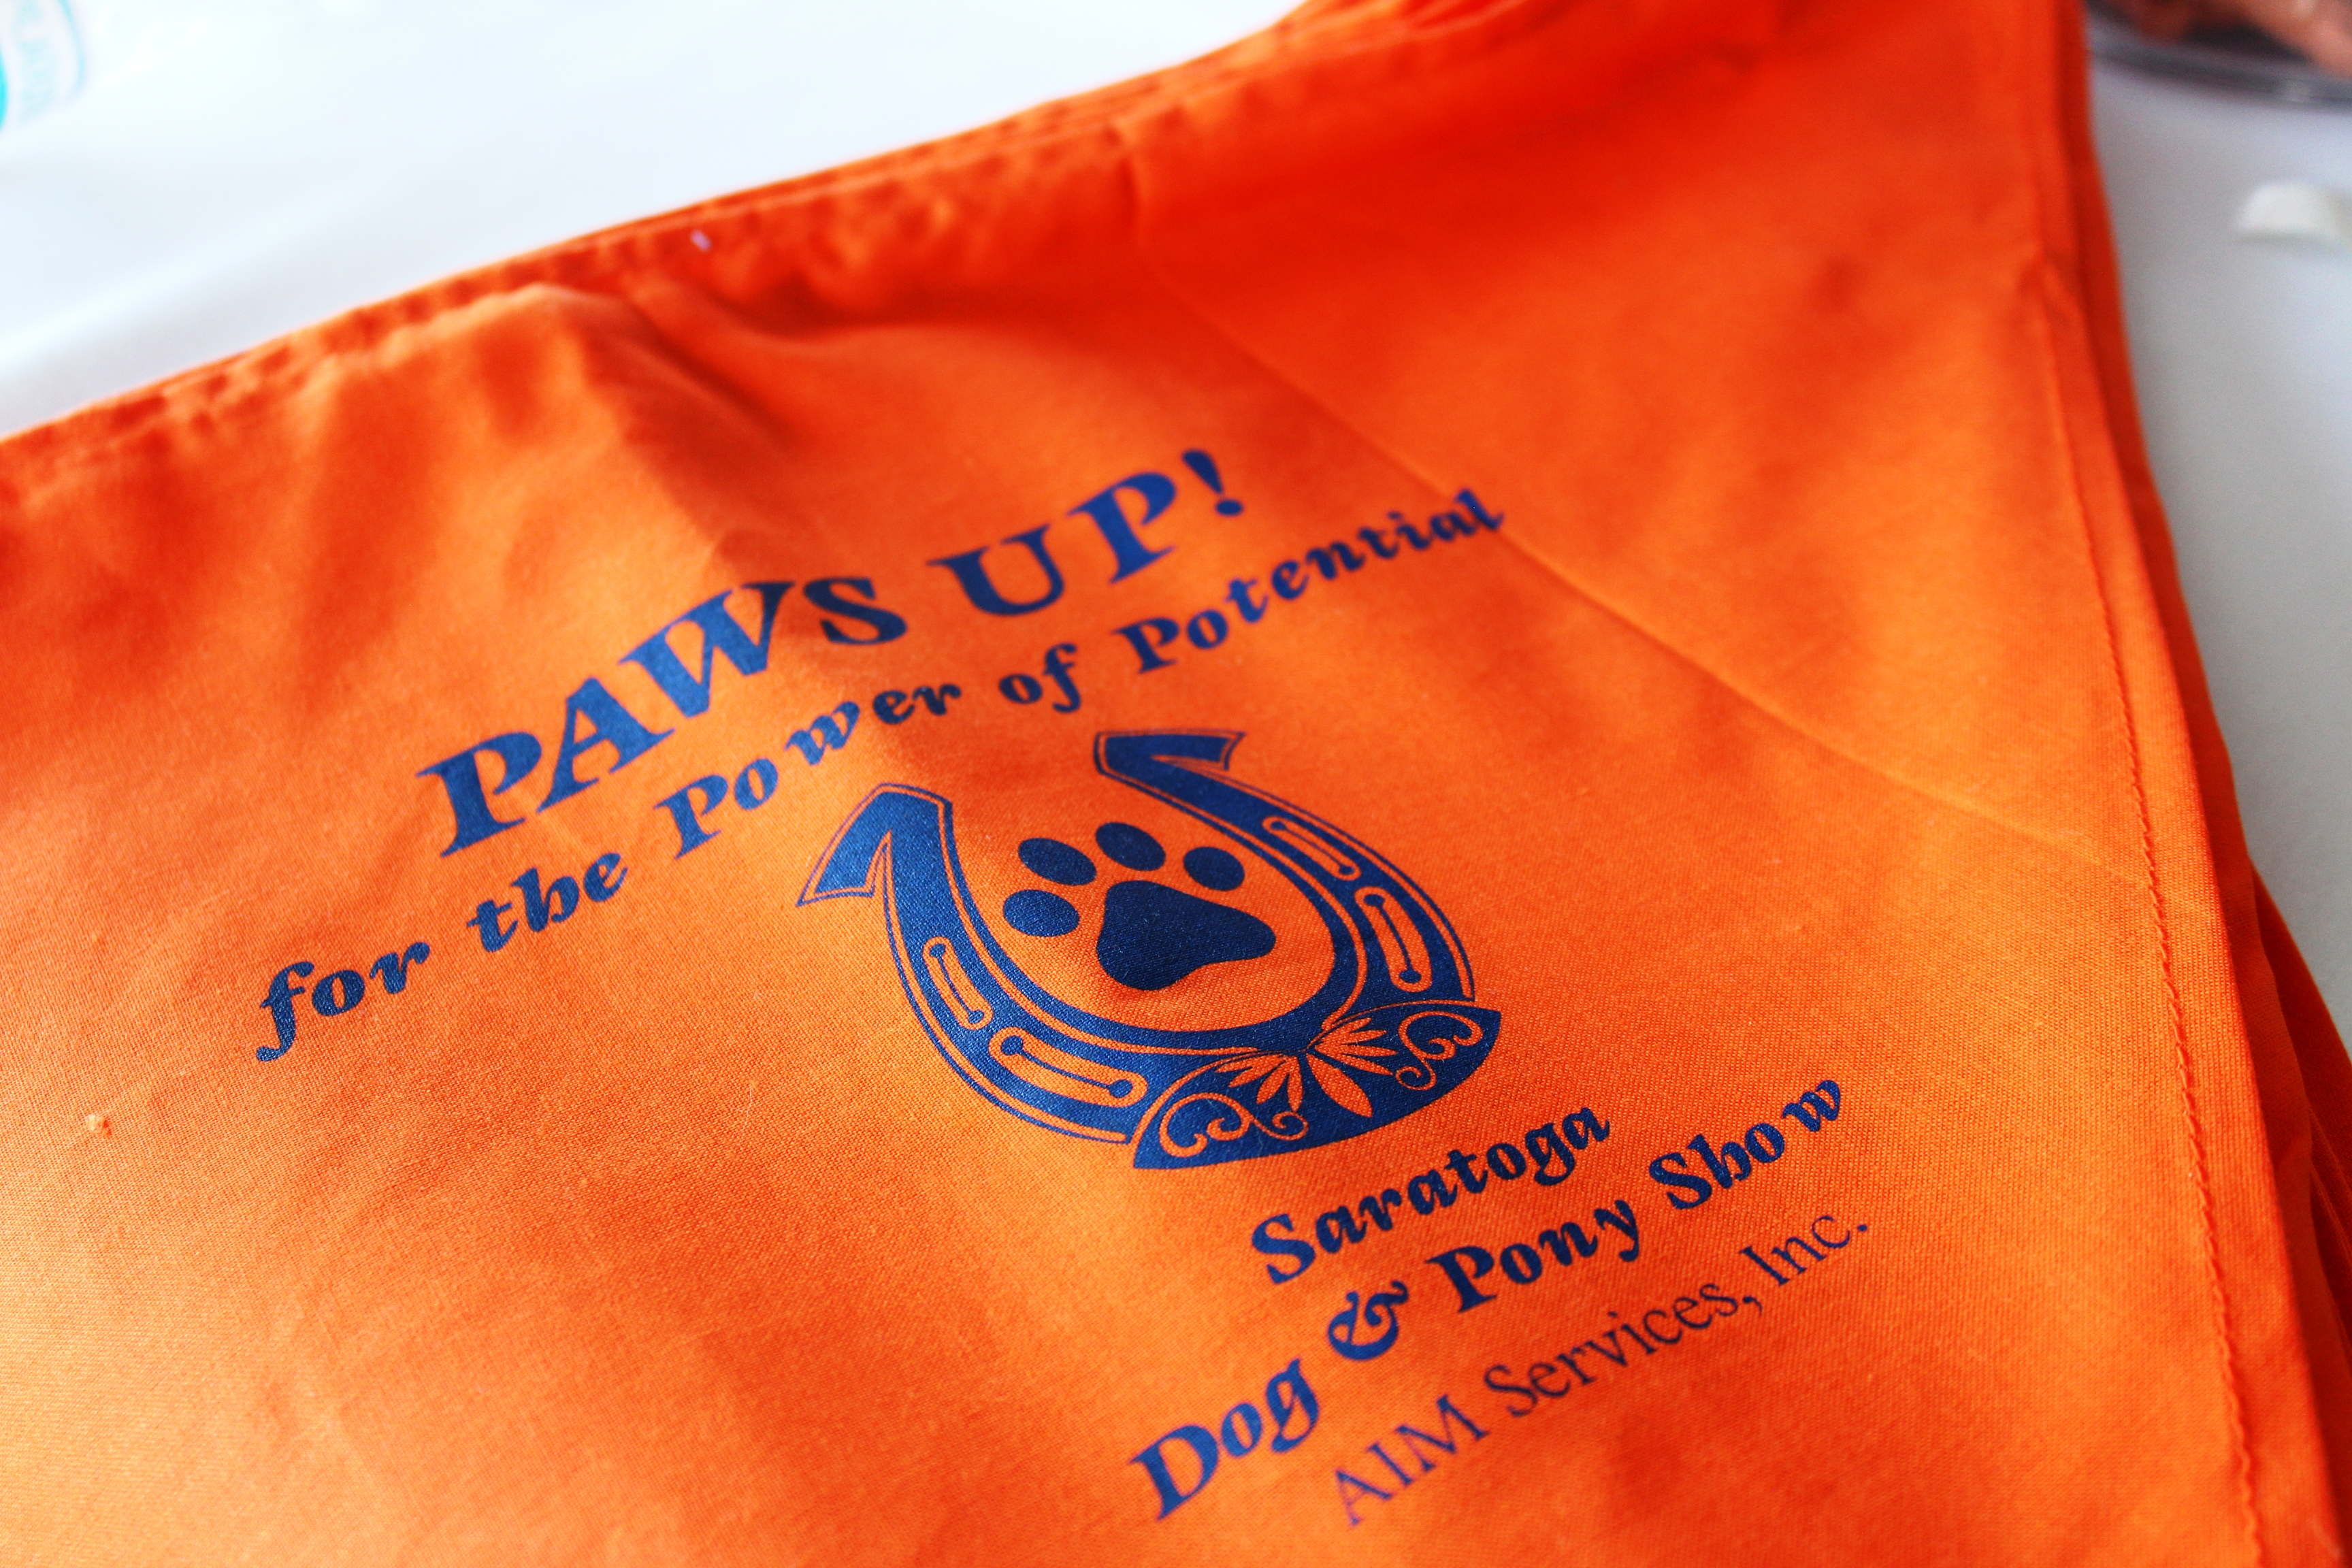 Paws up for the power of potential bandana at the Saratoga Dogs Pony Show to benefit AIM Services, Inc.